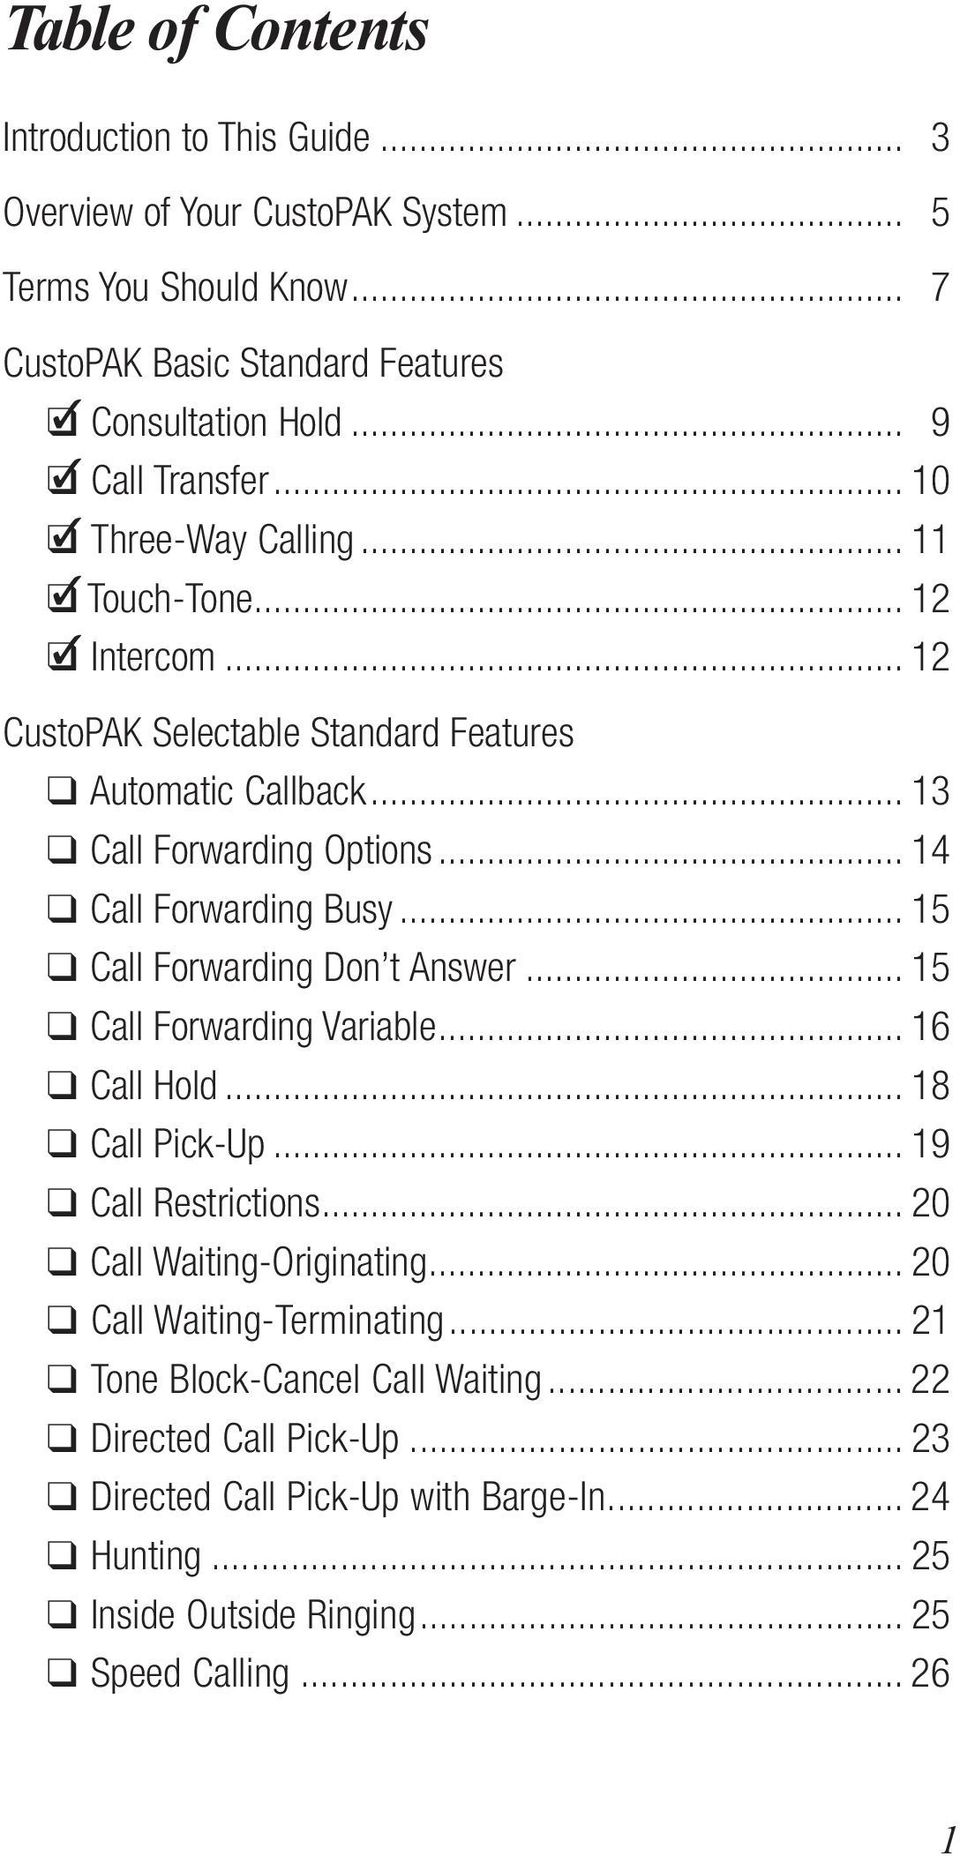 .. 14 Call Forwarding Busy... 15 Call Forwarding Don t Answer... 15 Call Forwarding Variable... 16 Call Hold... 18 Call Pick-Up... 19 Call Restrictions... 20 Call Waiting-Originating.